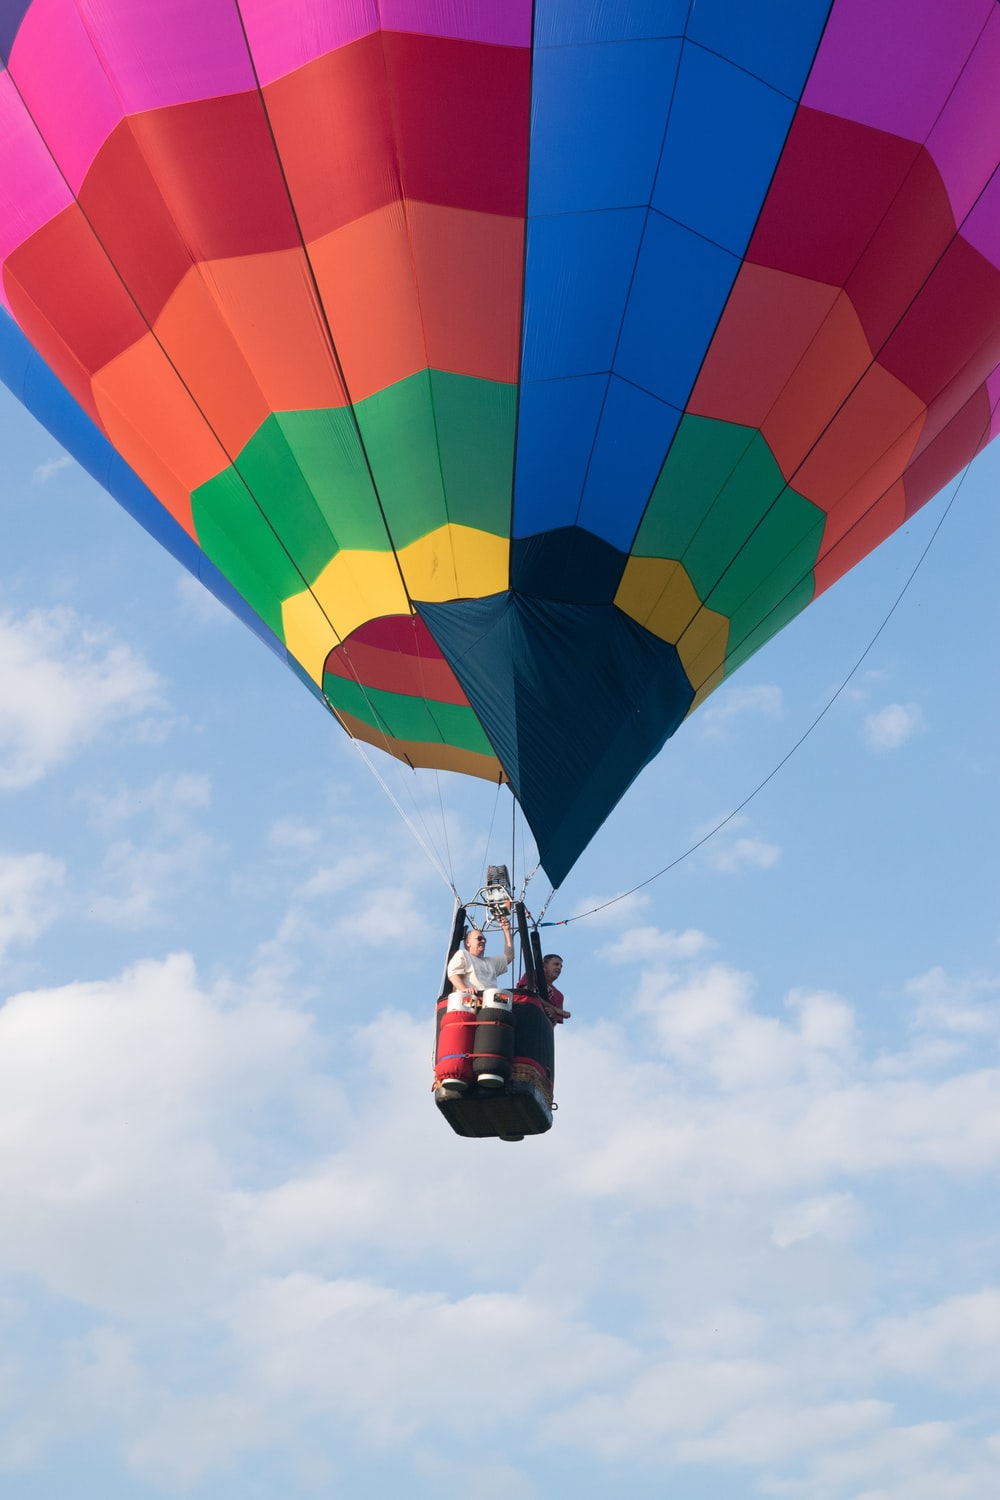 multicolored hot air balloon on air during daytime